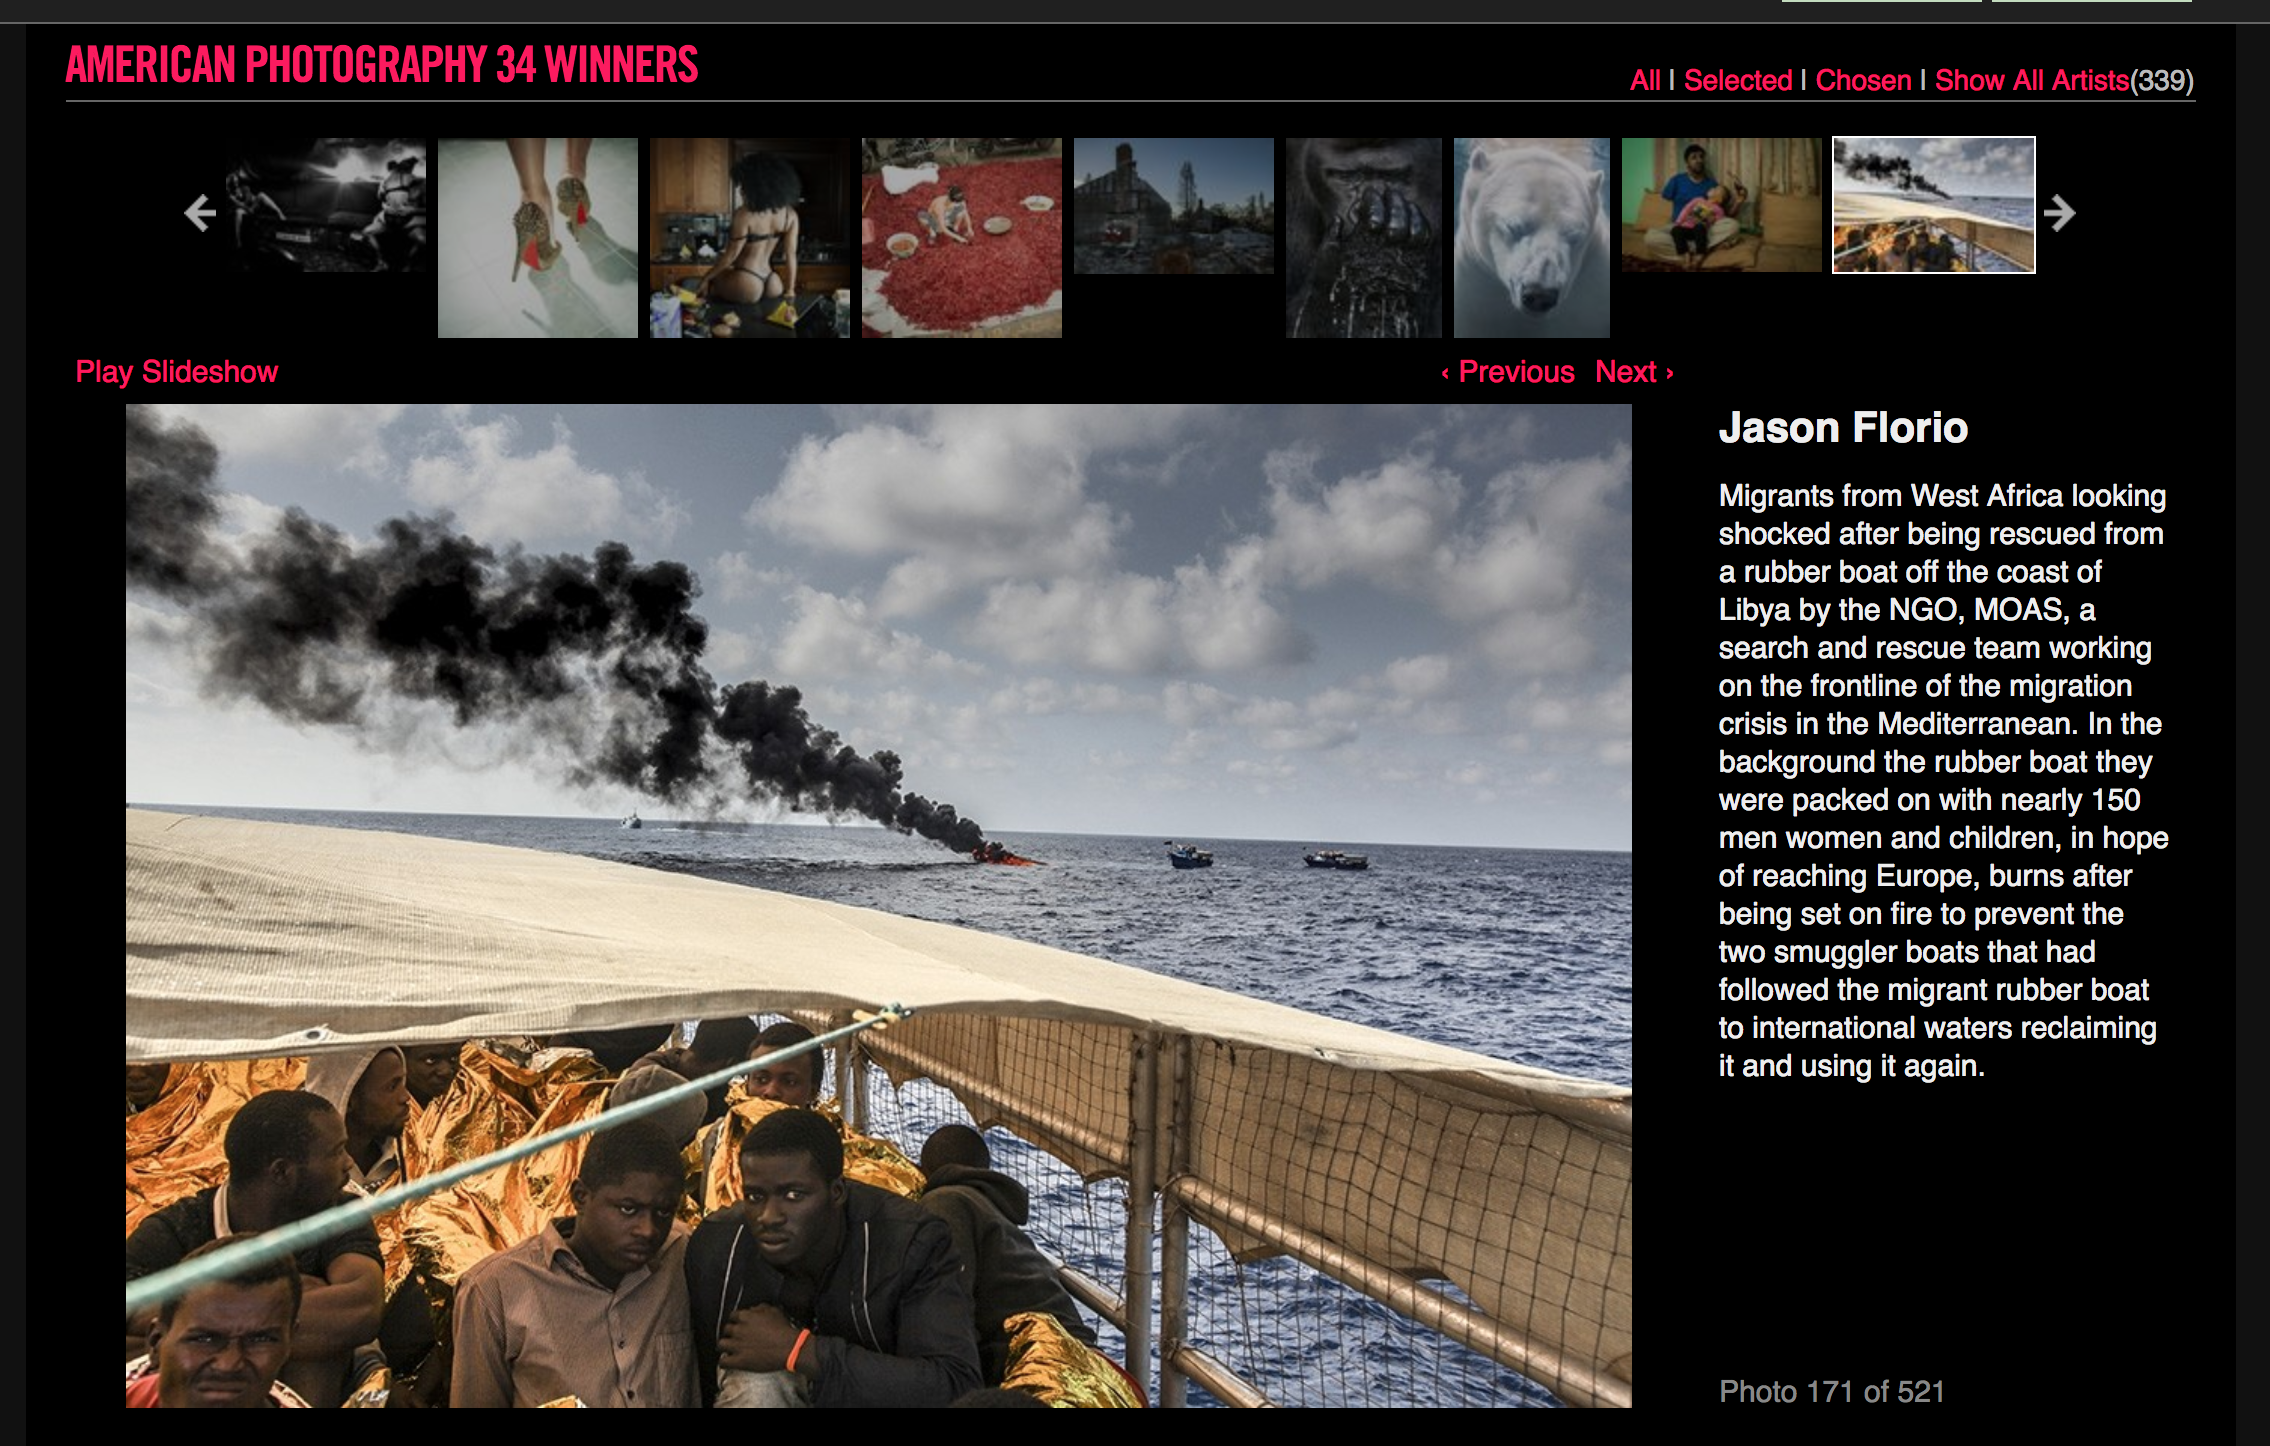 American Photography 34 Winners - image ©Jason Florio - 'Destination Europe' shell-shocked West African migrants on board rescue boat, Mediterranean, as their smugglers dinghy is set on fire in the background